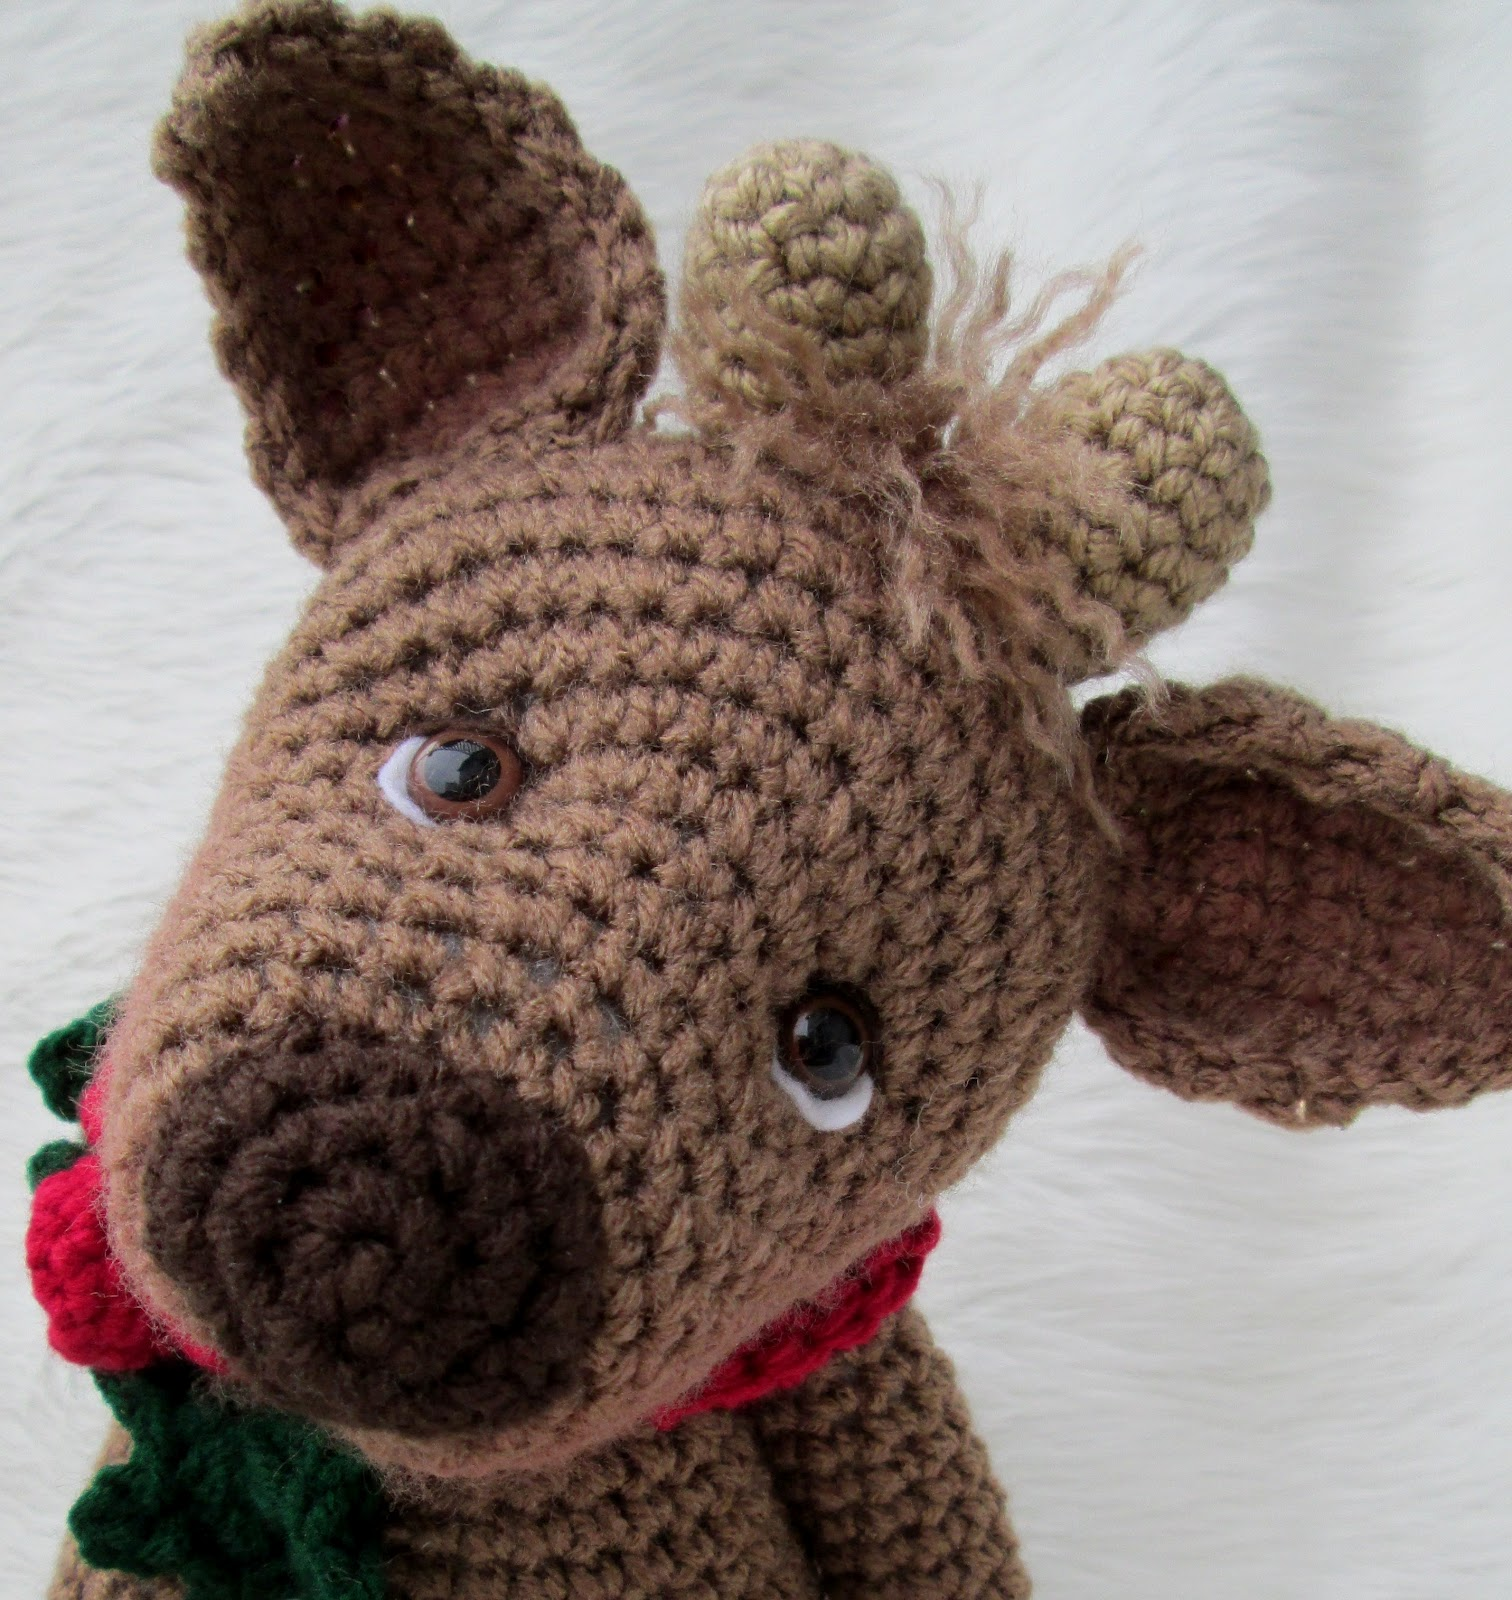 Wool and Whims: New Crochet Pattern, Simply Cute Reindeer